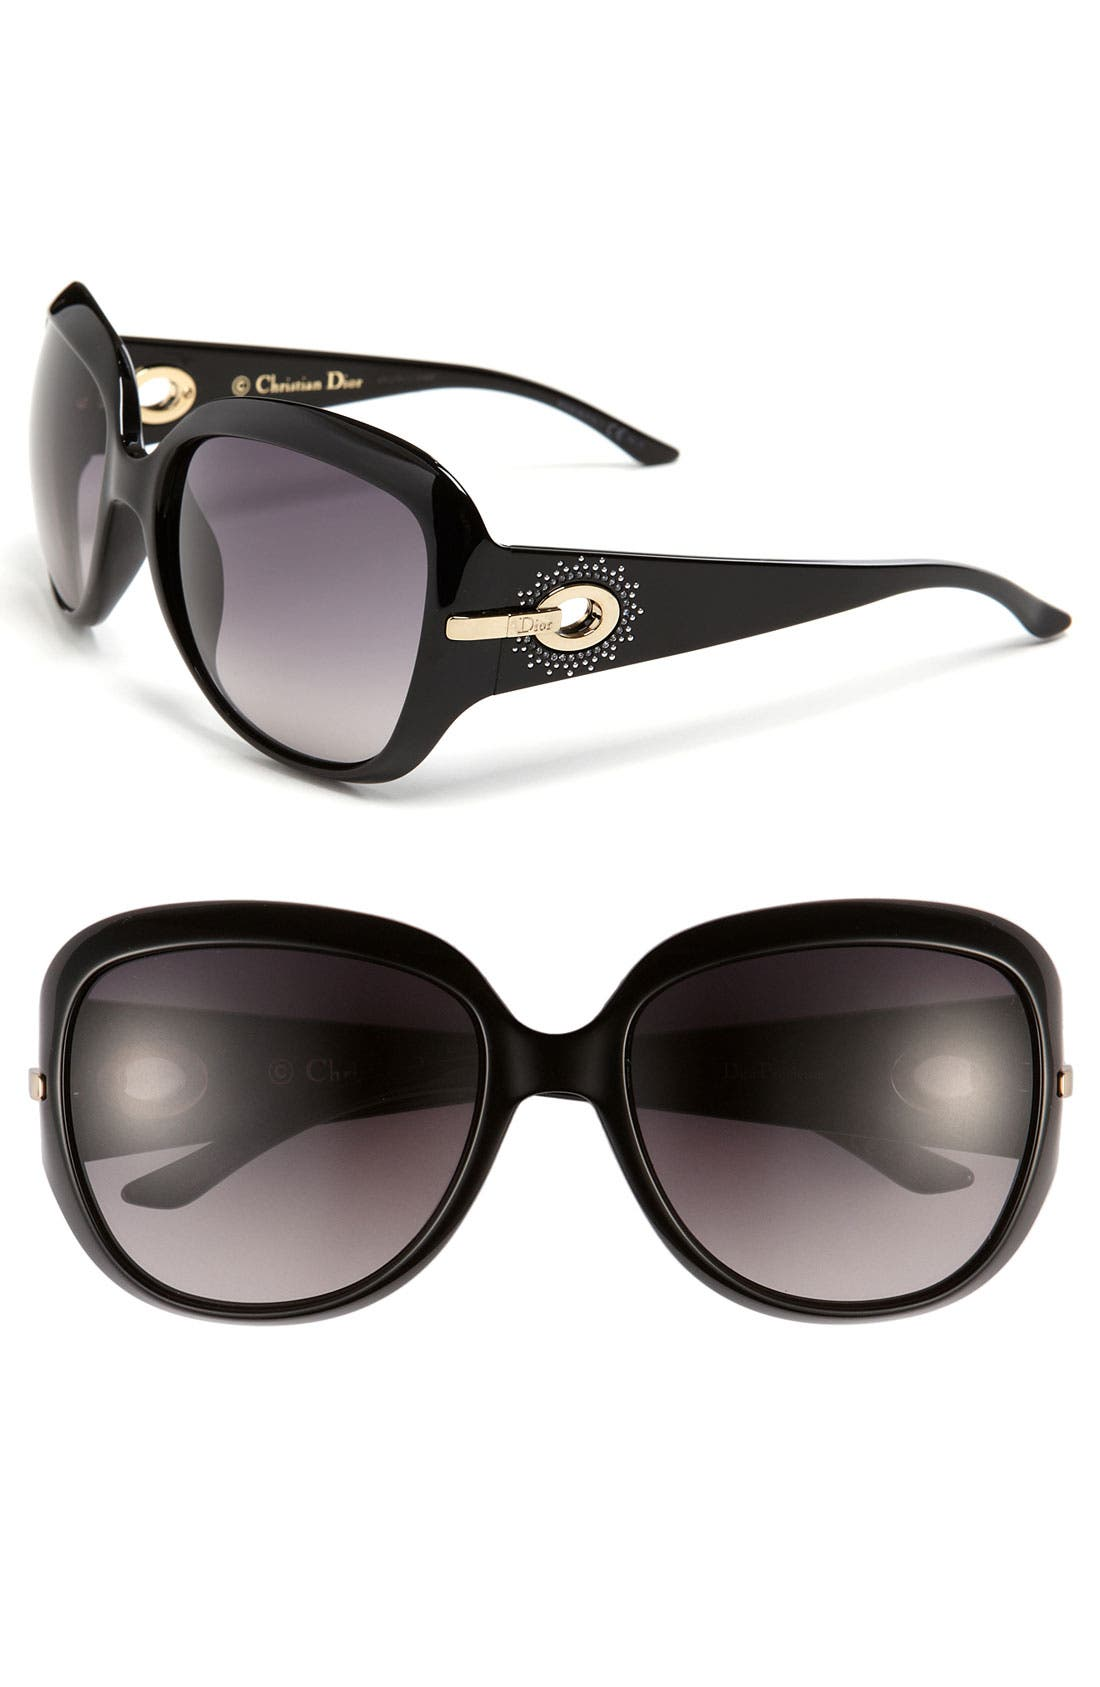 Main Image - Dior 57mm Oversized Sunglasses